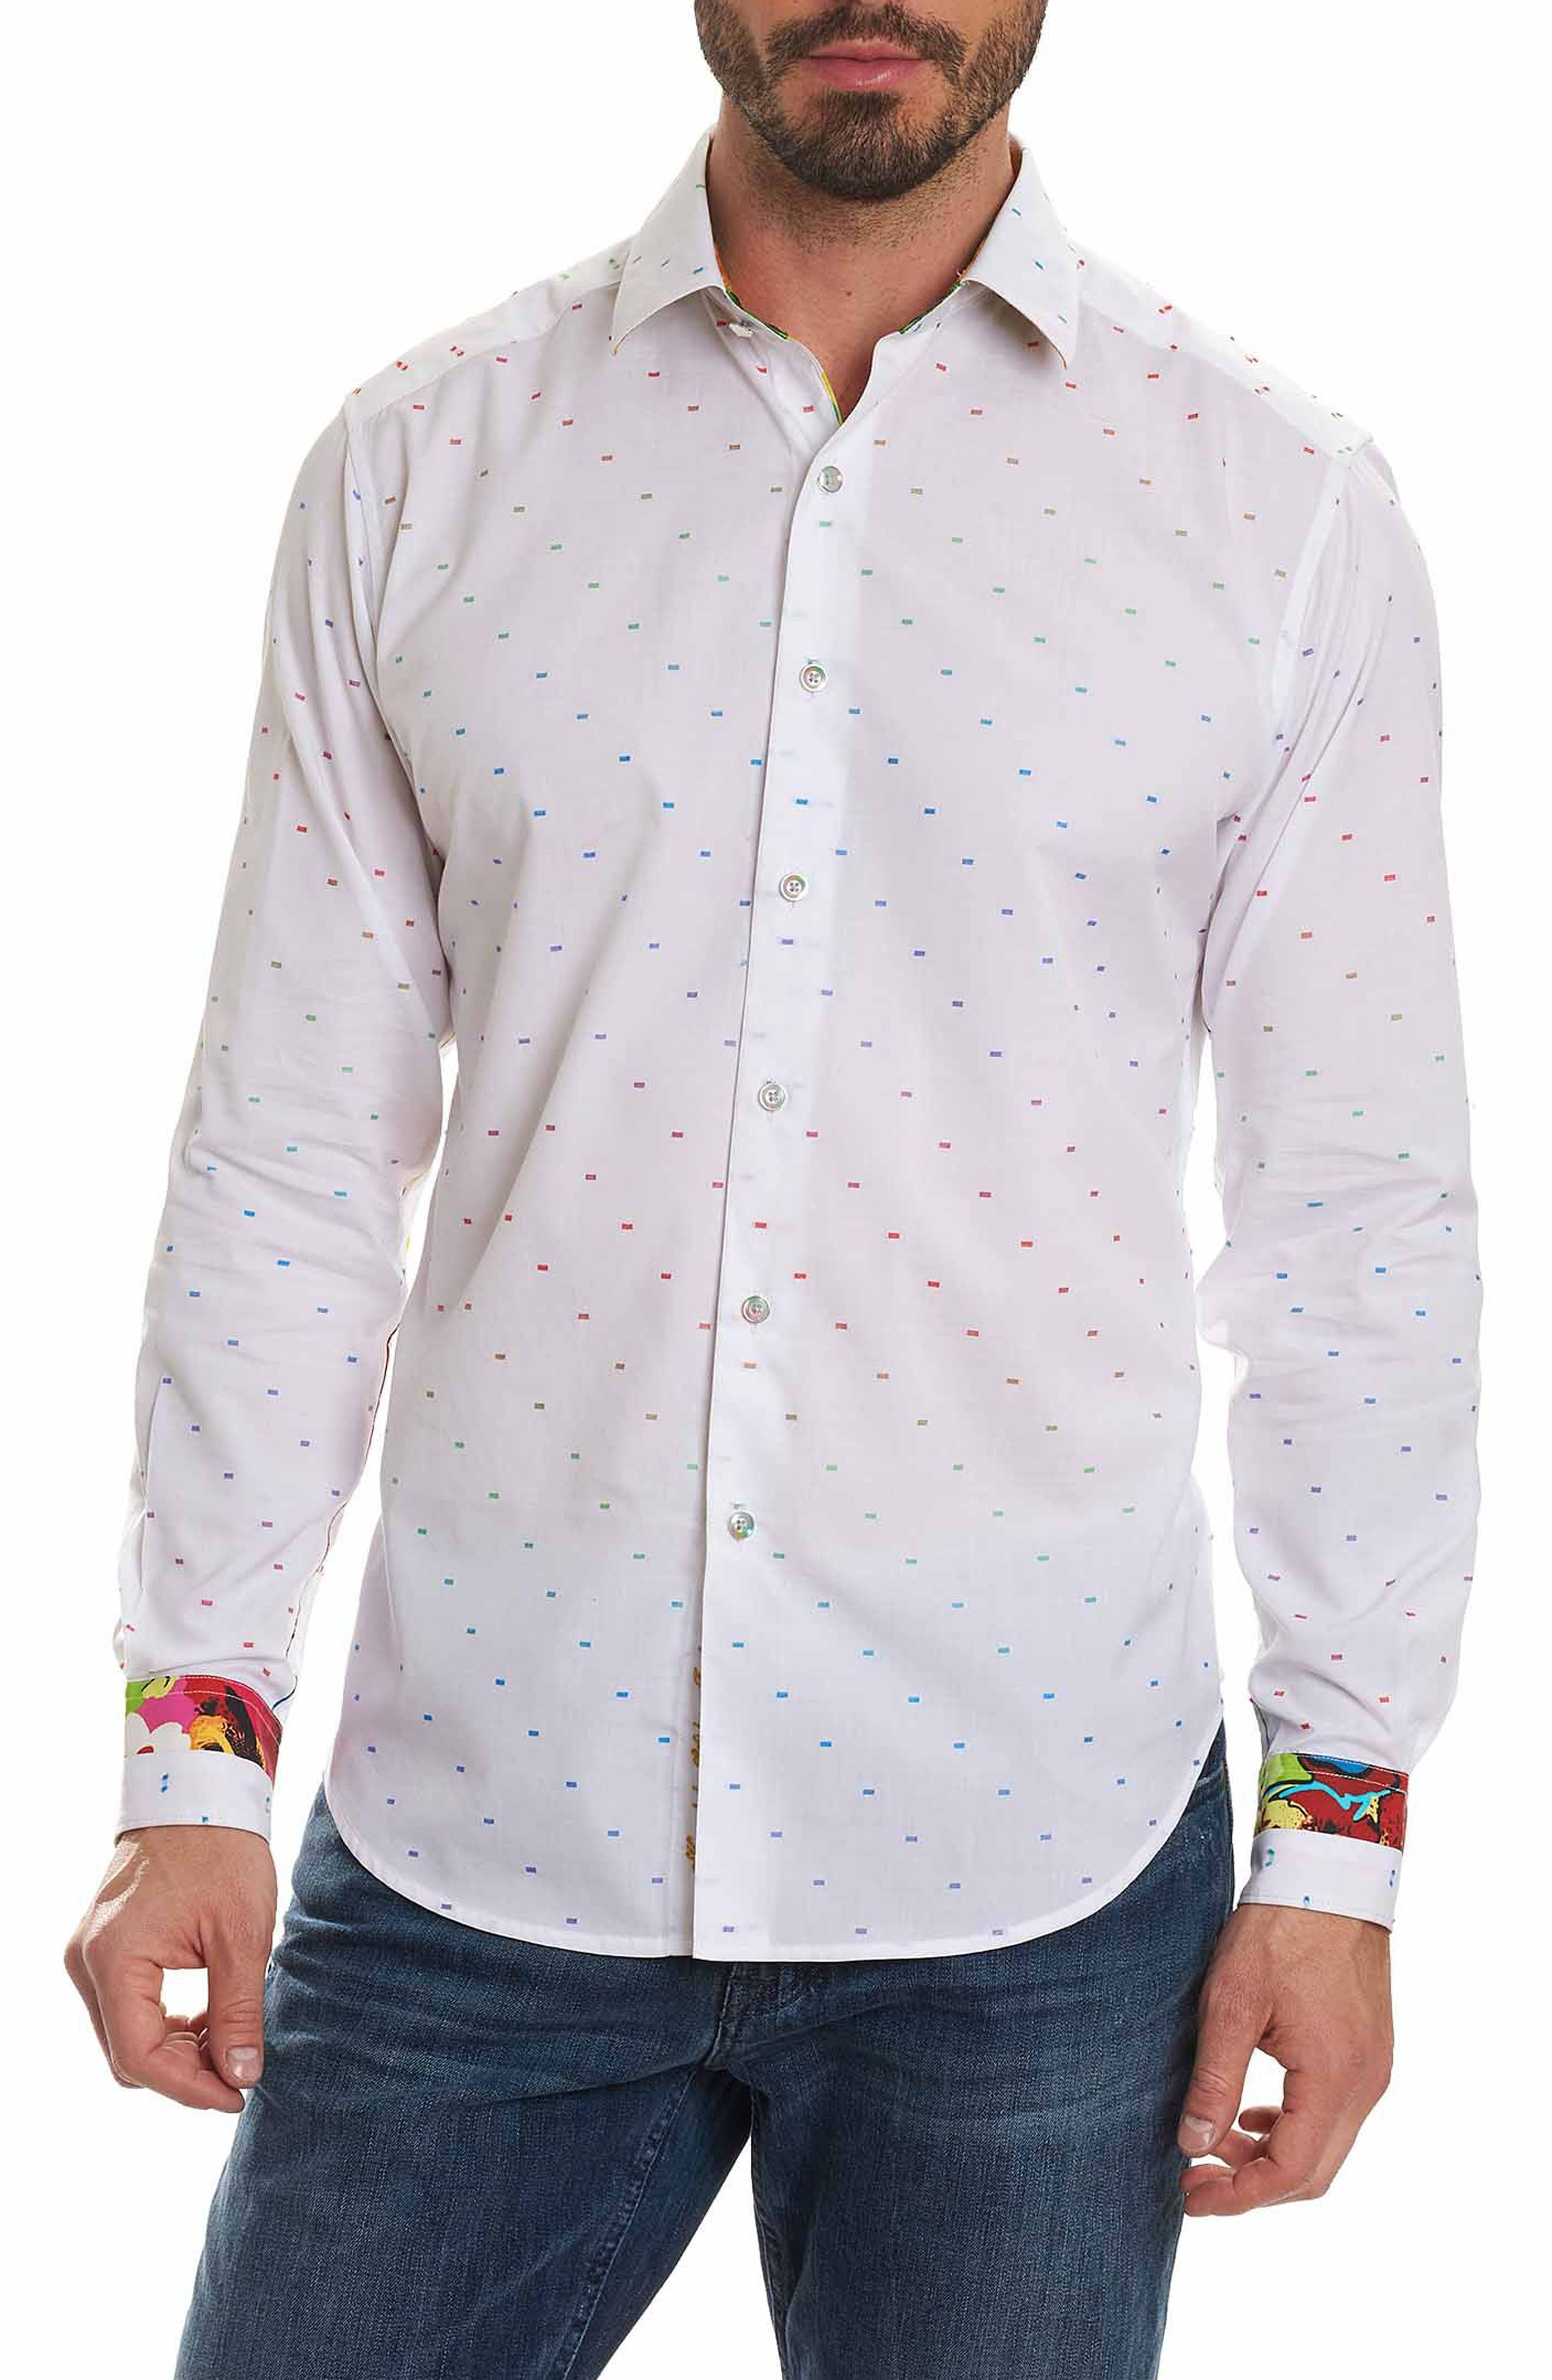 Alternate Image 1 Selected - Robert Graham Karyan Classic Fit Jacquard Sport Shirt